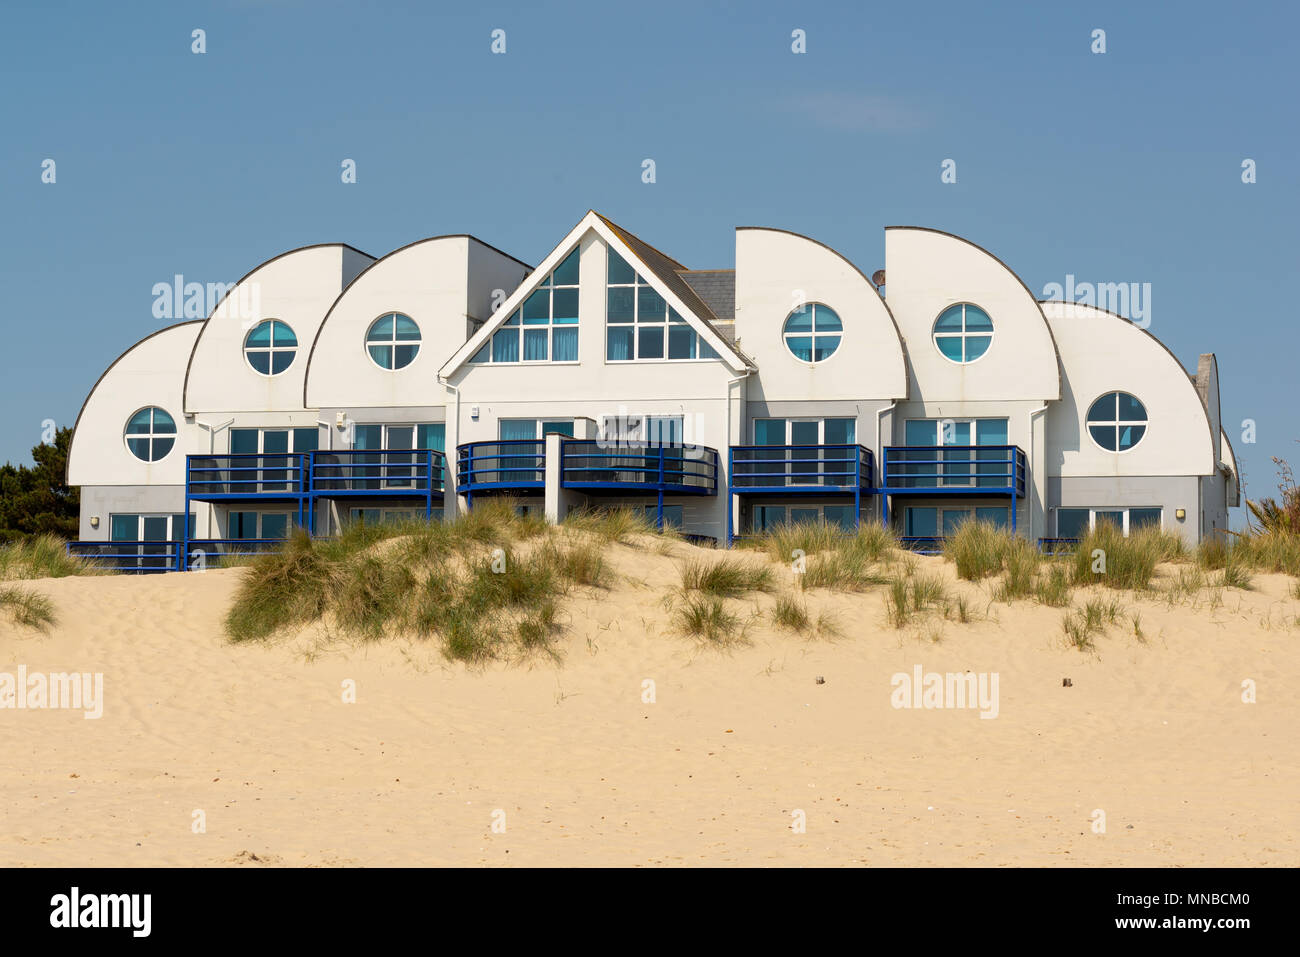 Ostentatious design of a property in the exclusive beach fronted area of the Sandbanks peninsula, Poole, Dorset, UK - Stock Image